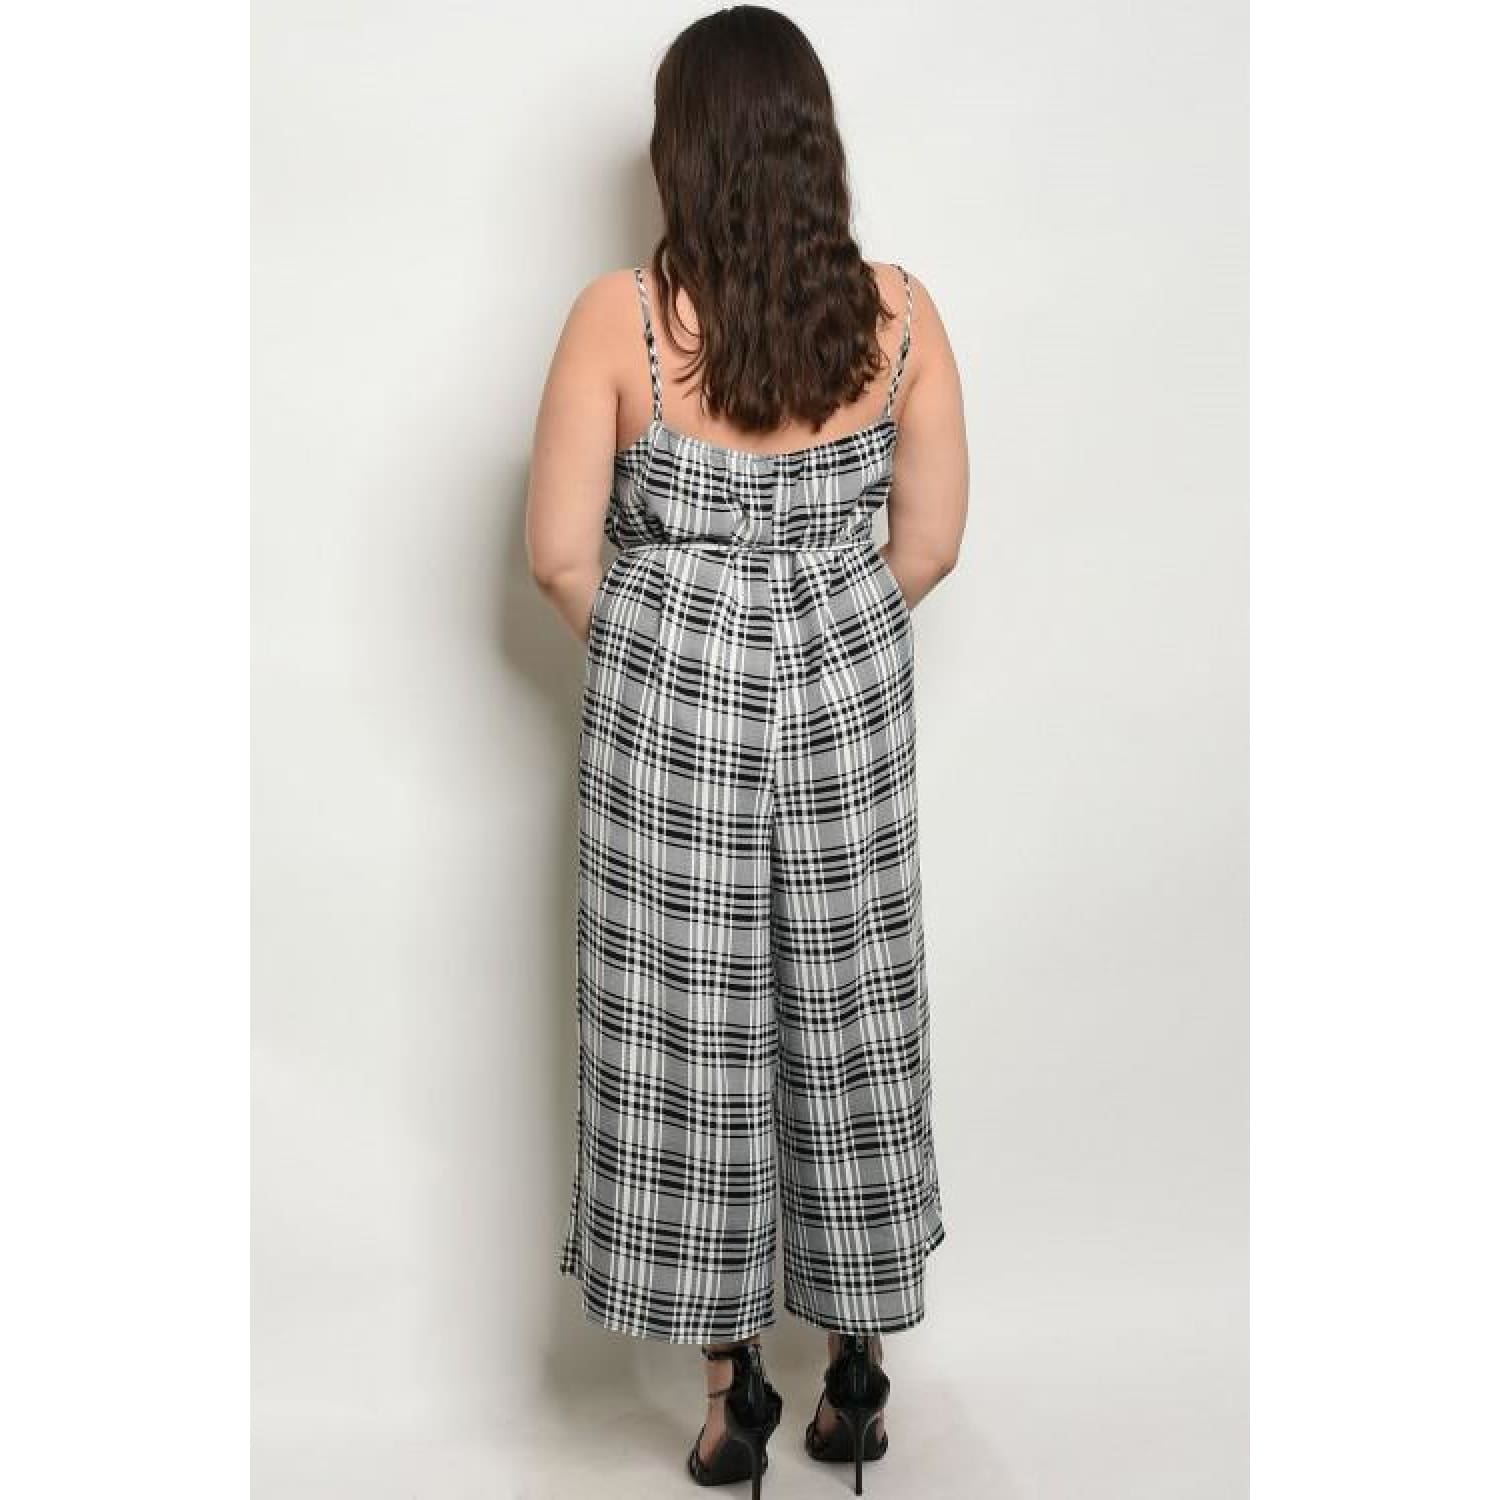 Black White Checkers Plus Size Jumpsuit - Best YOU by HTS